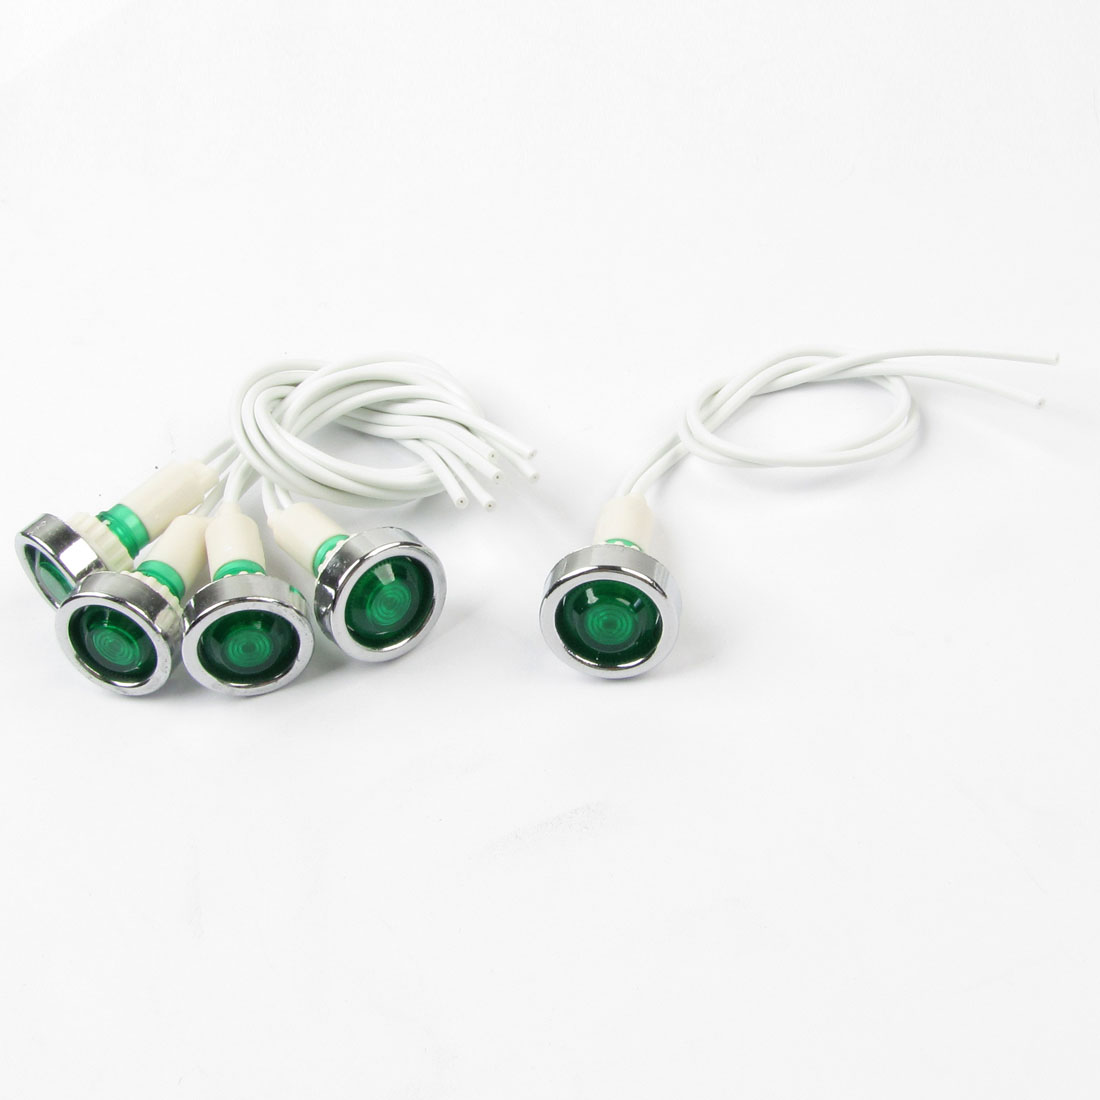 "5 Pcs AC 220V 7.9"" Long Cable Green Bulb Power Indicator Dash Pilot Light"